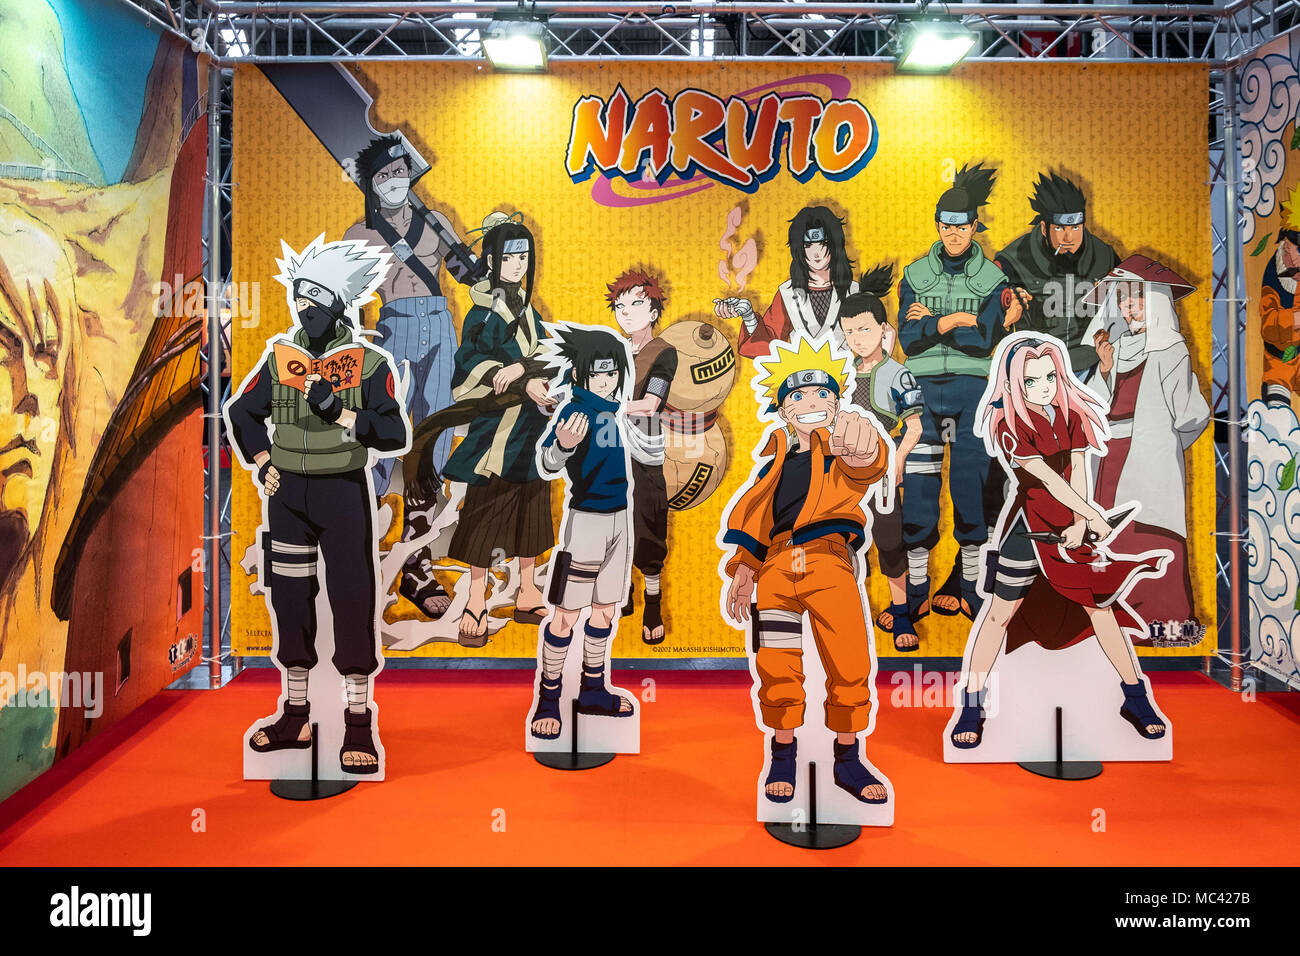 April 12, 2018 - Barcelona, Catalonia, Spain - Stage for selfies with Naruto characters. Opening of the 36th Barcelona International Comic Fair from 12th-15th April 2018 in Fira Barcelona Montjuïc. (Credit Image: © Paco Freire/SOPA Images via ZUMA Wire) Stock Photo